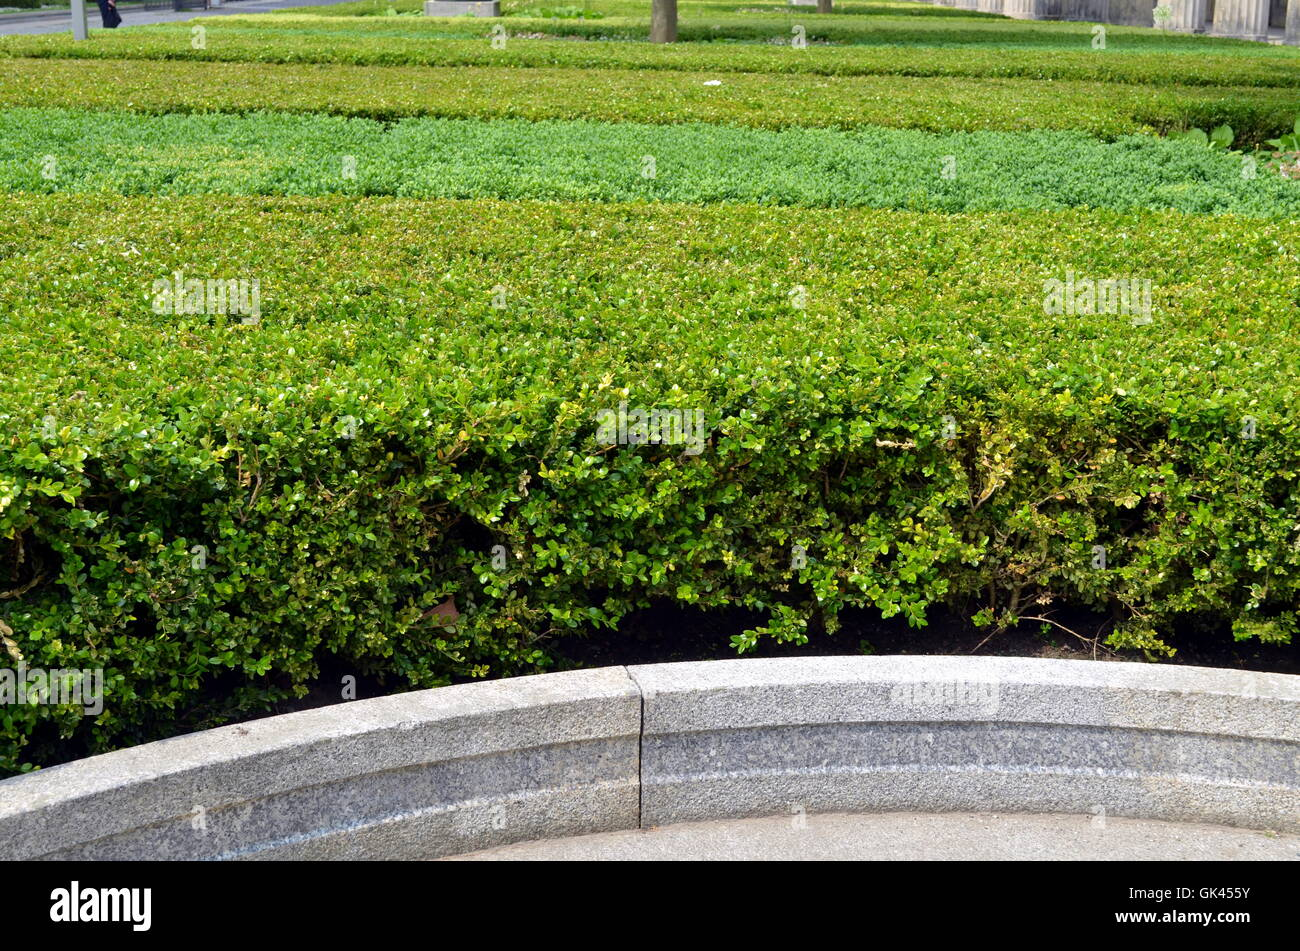 bushes of boxwood in a garden in berlin - Stock Image